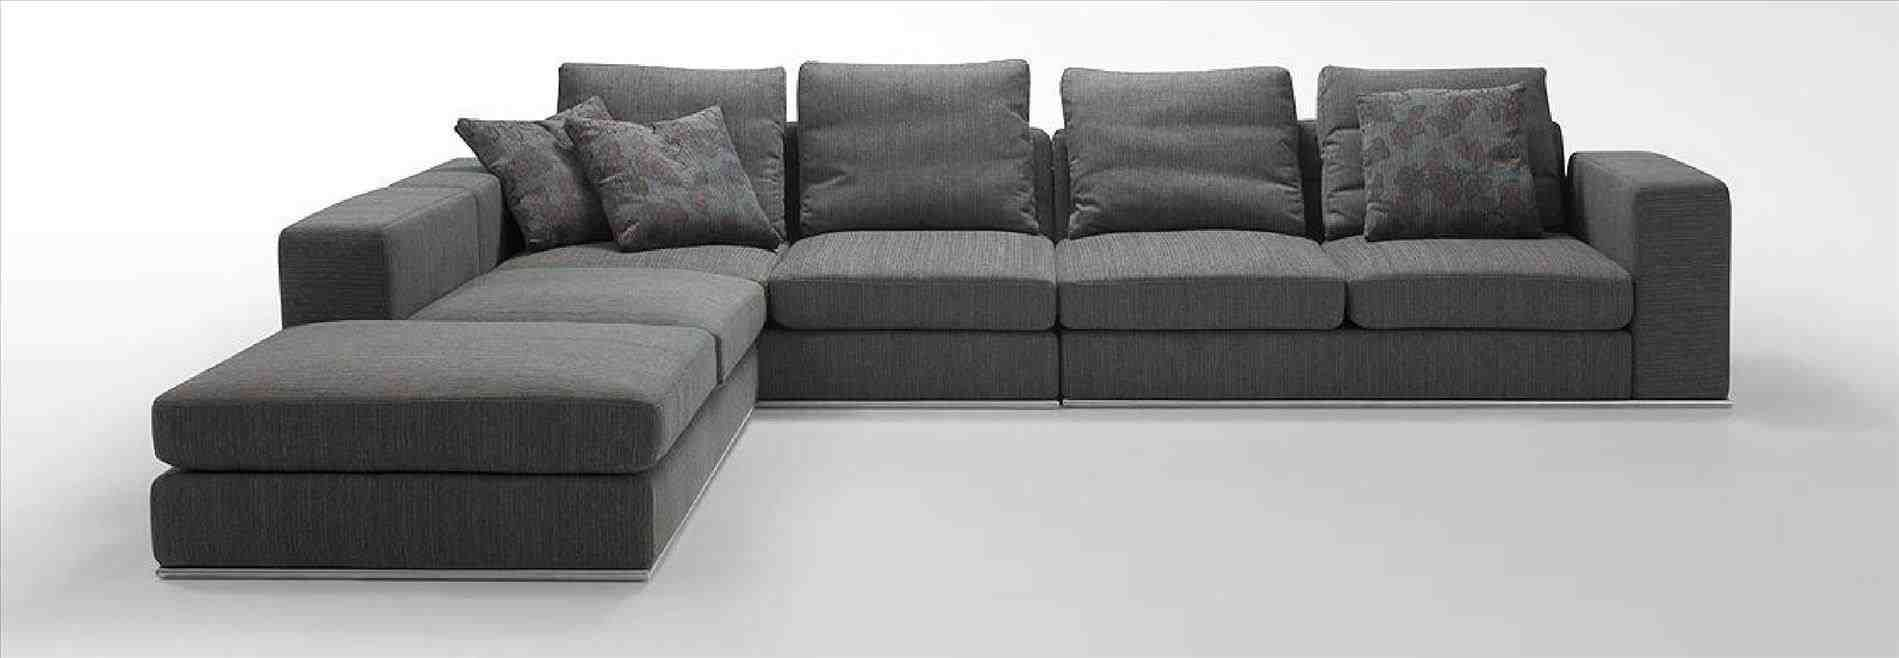 Best Cheap Sectionals Vancouver Apartment Size Couches Full 400 x 300